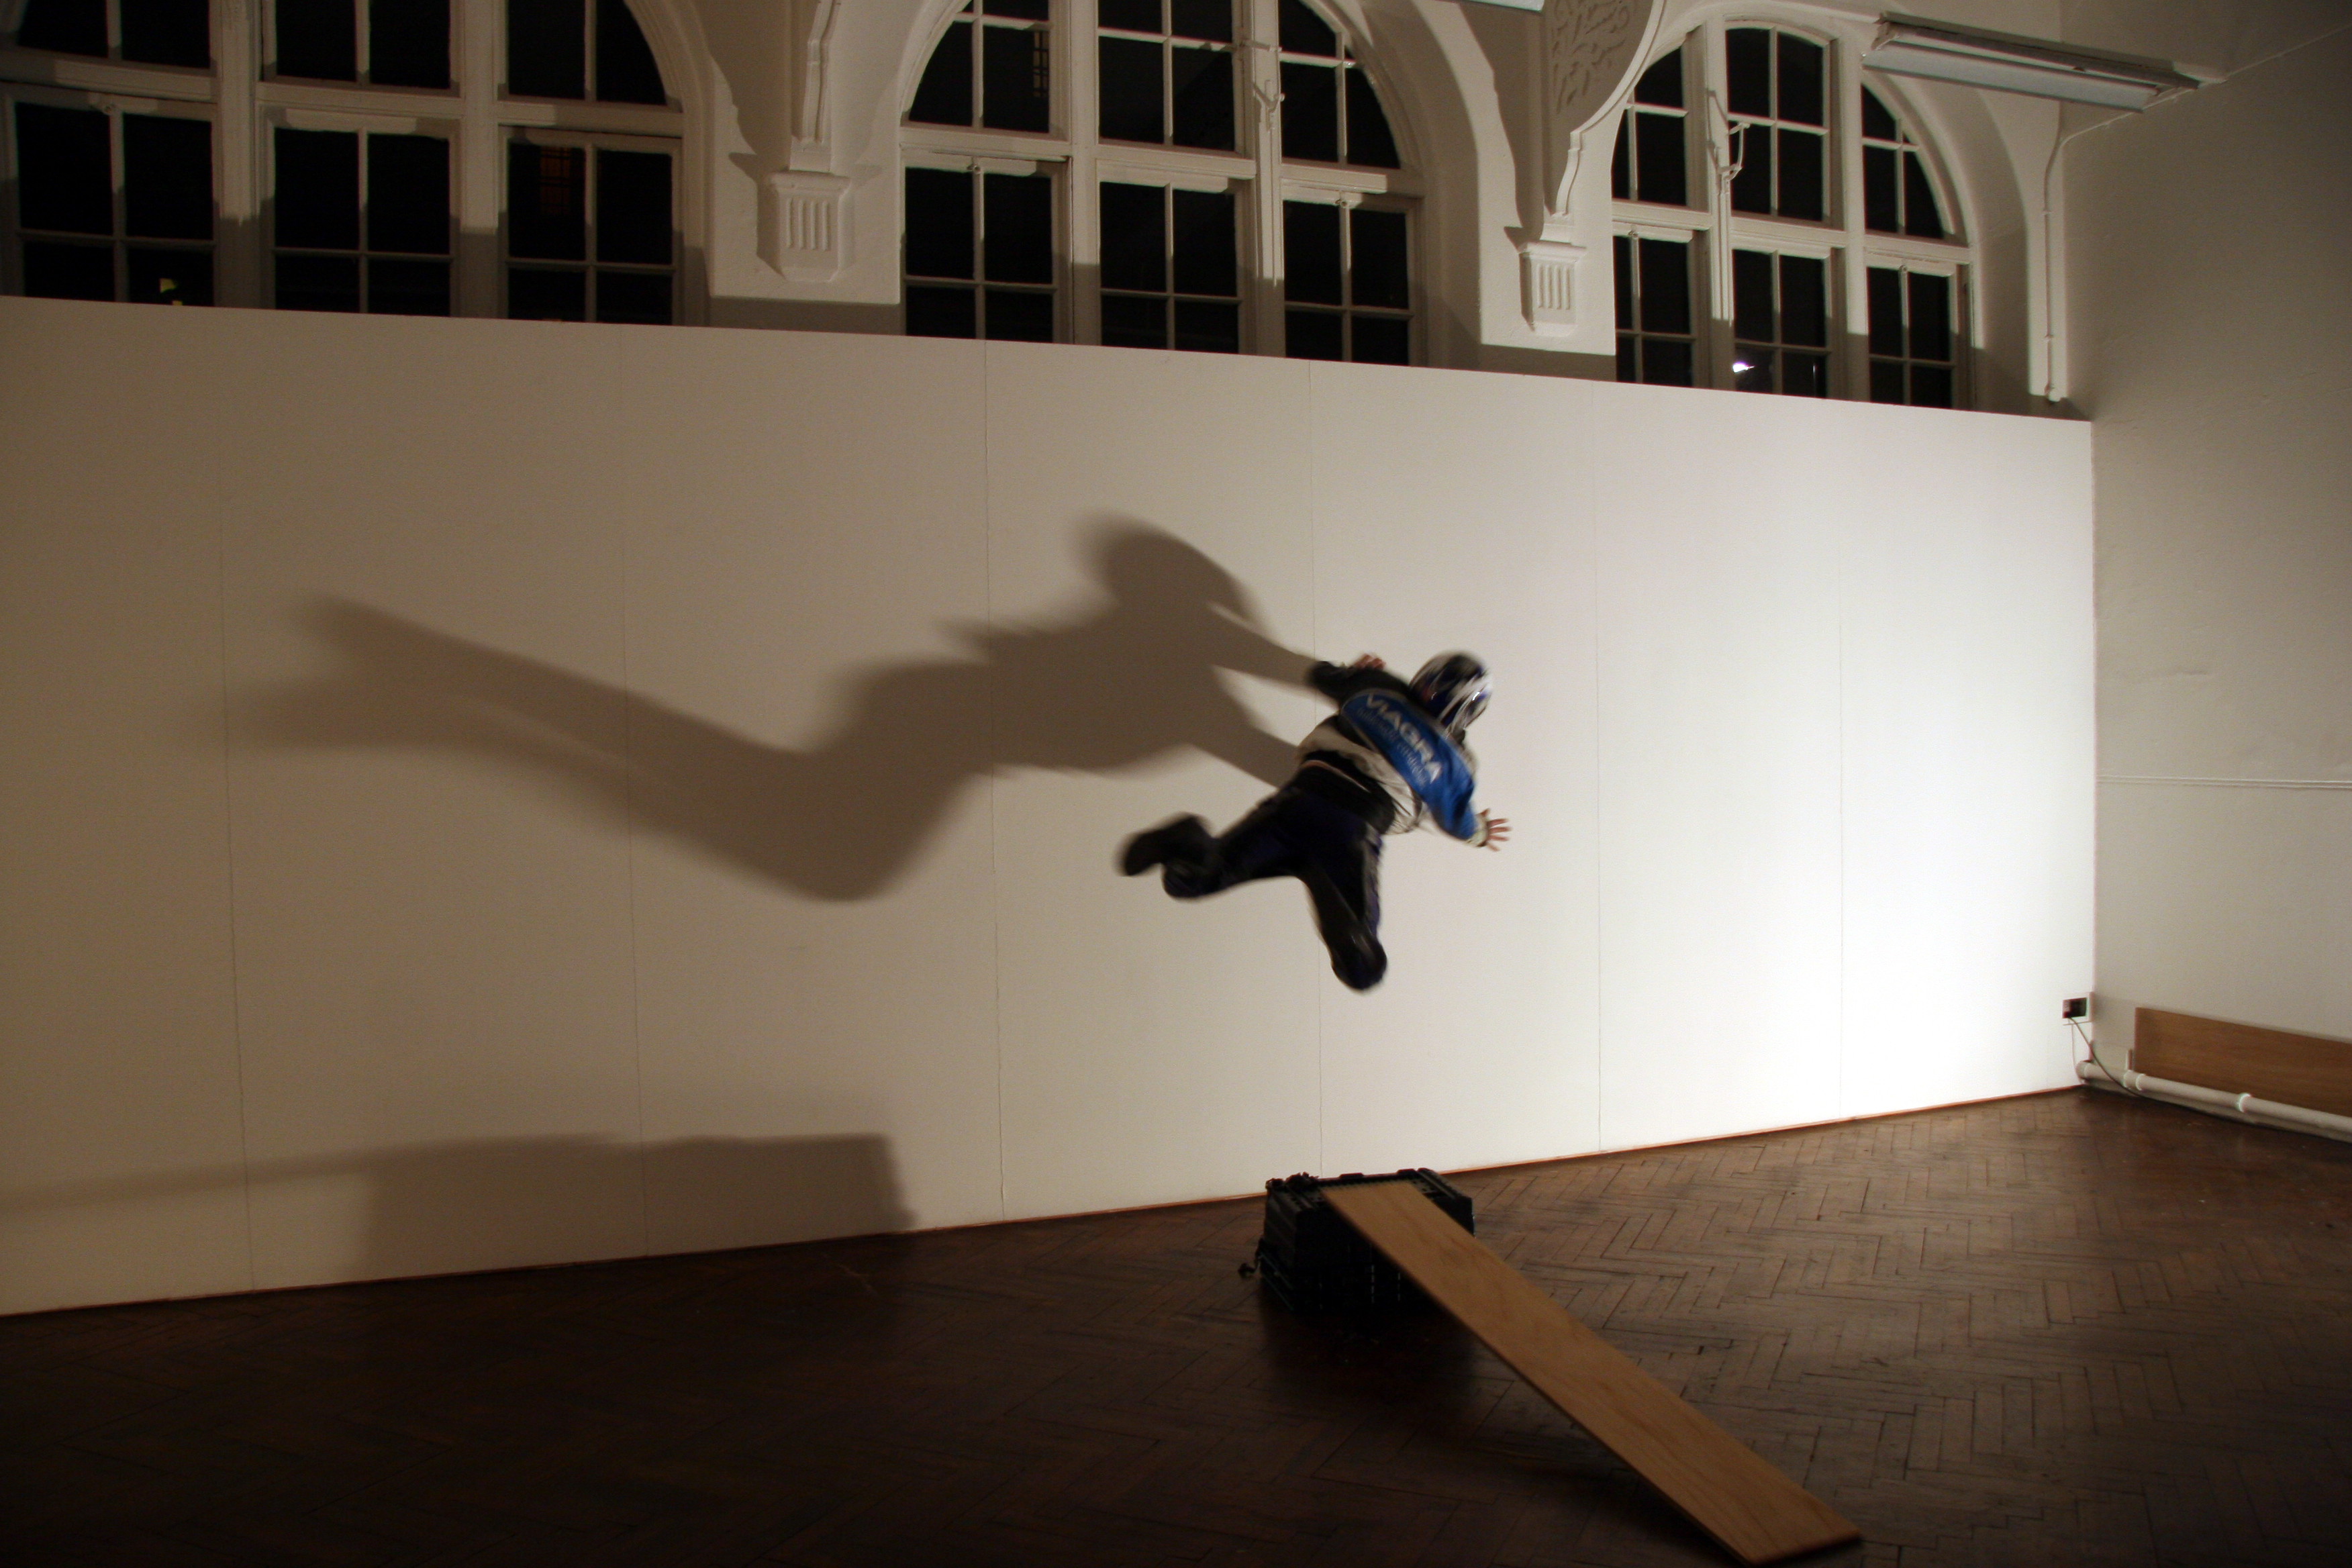 artist launches himself against a white wall with windows above